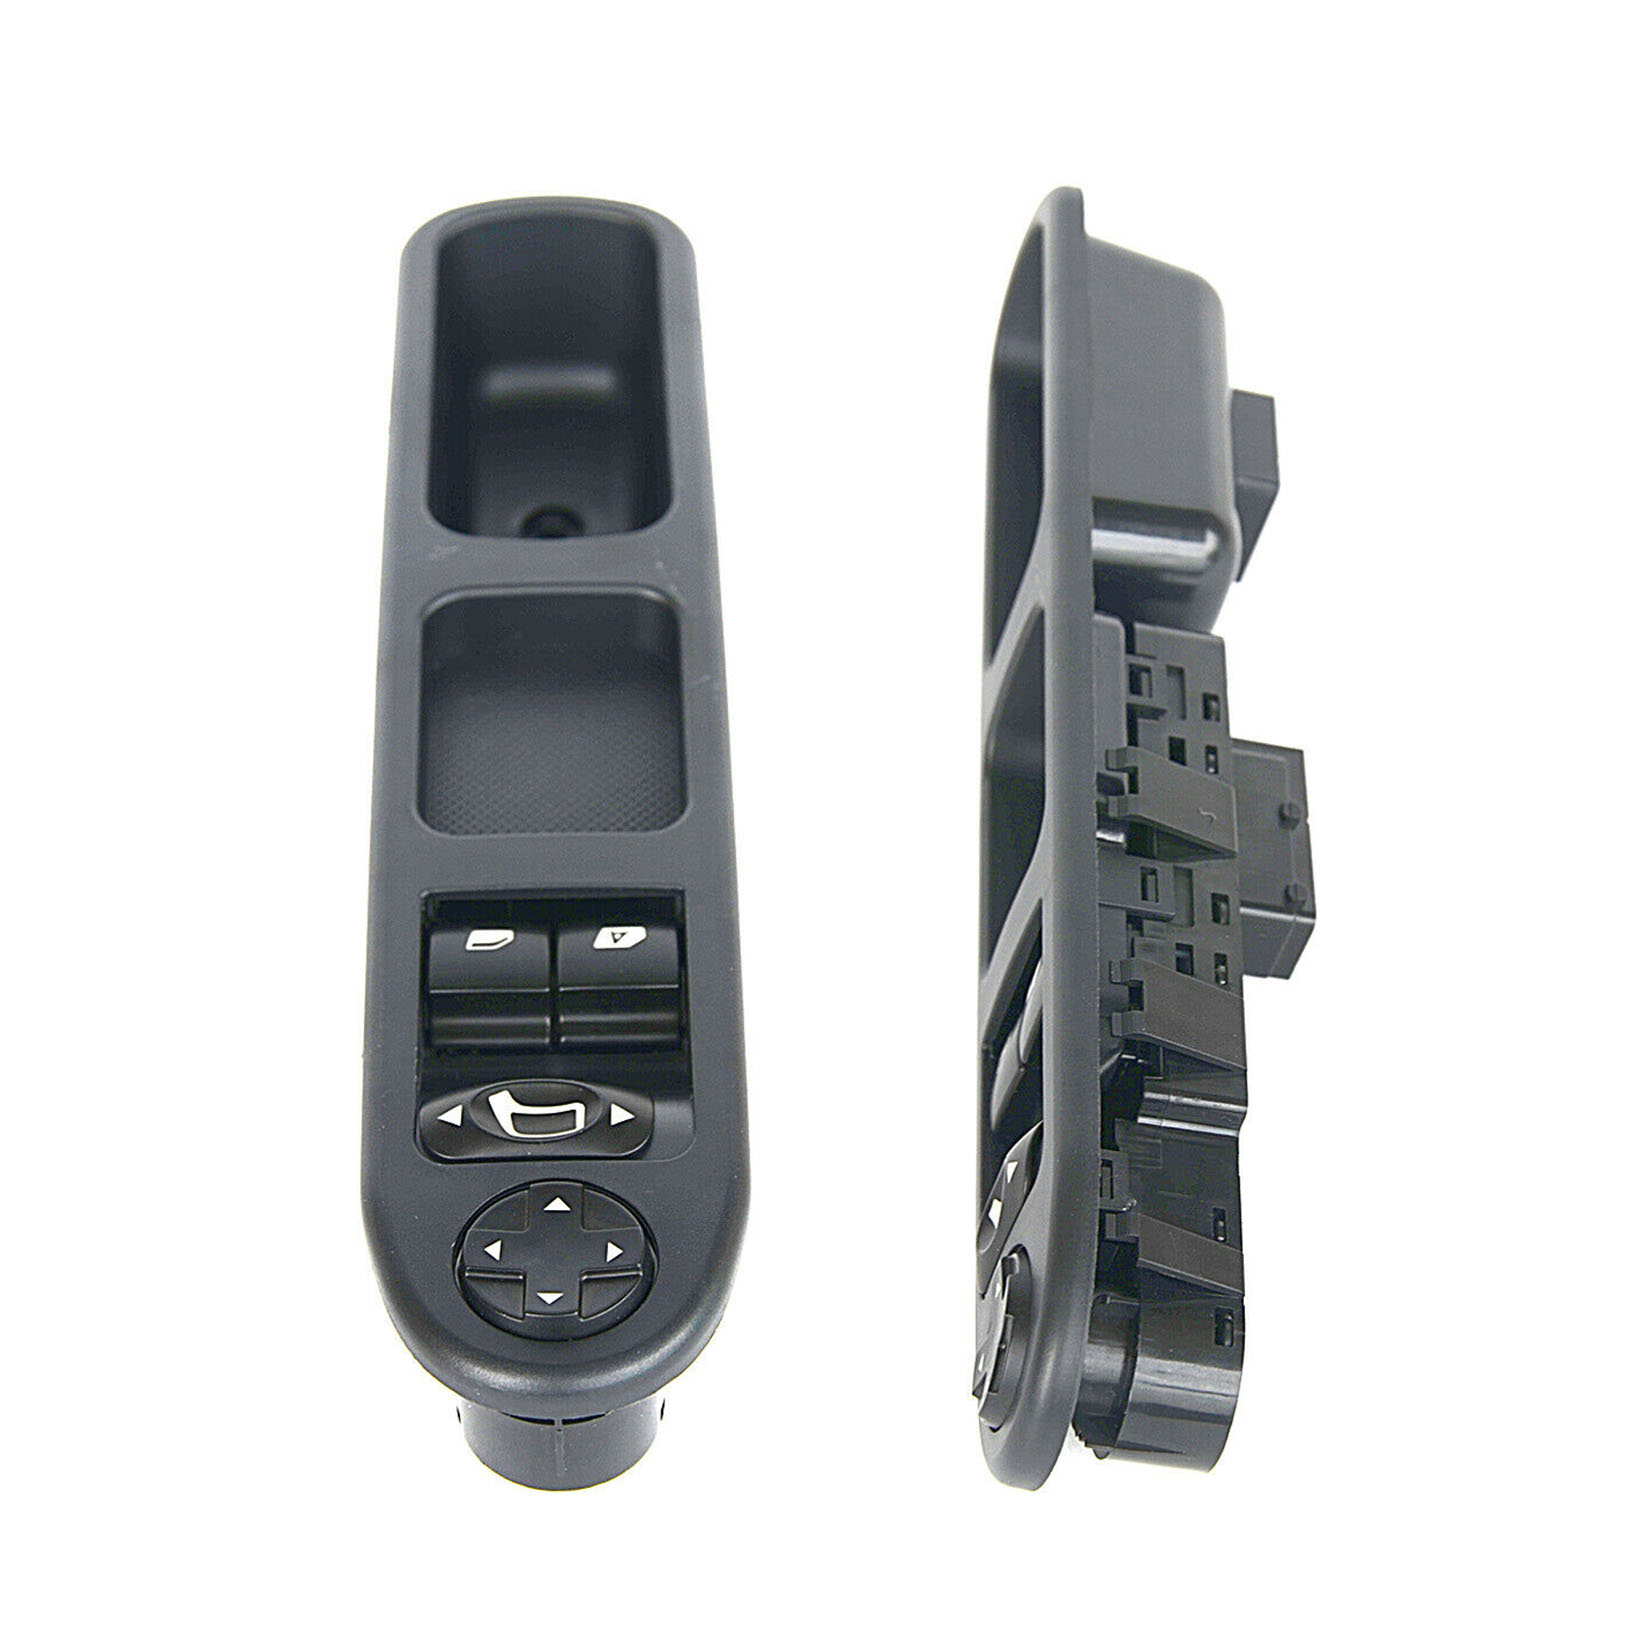 Power Window Master Control switch Fits 6554.QC 6554QC by Best Thumbs Up